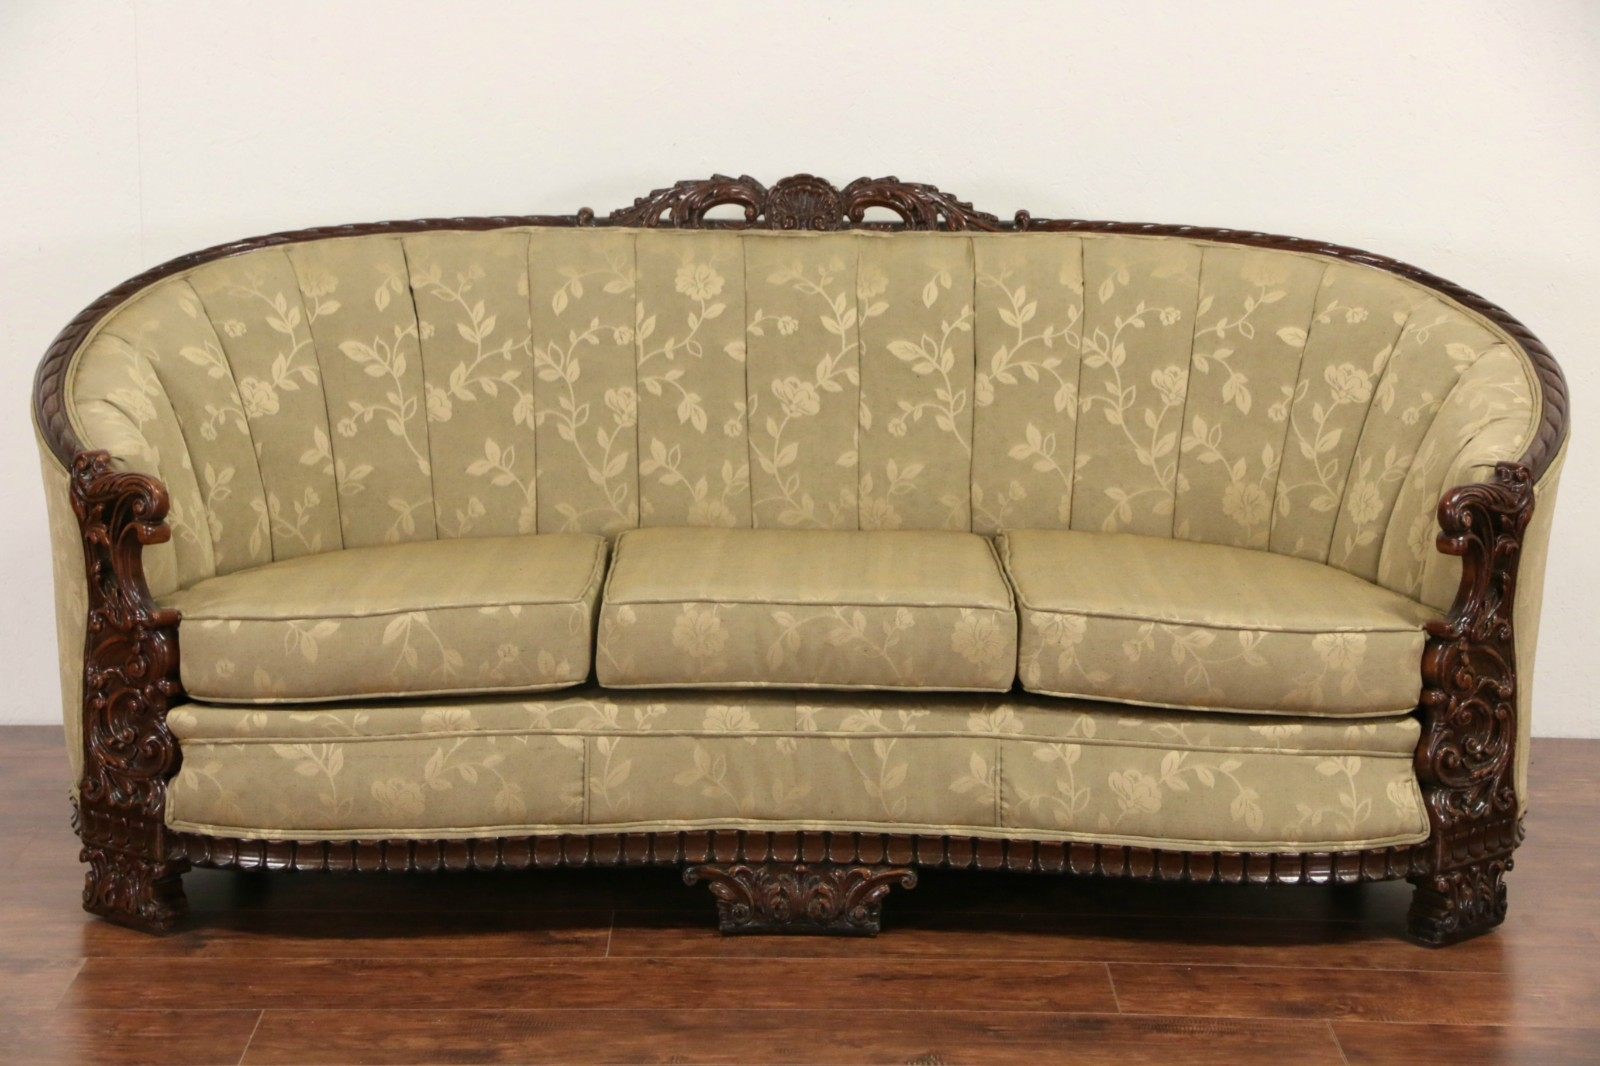 Sold Carved Sofa Club Chair Set 1930s Vintage New Inside 1930s Sofas (Image 10 of 15)